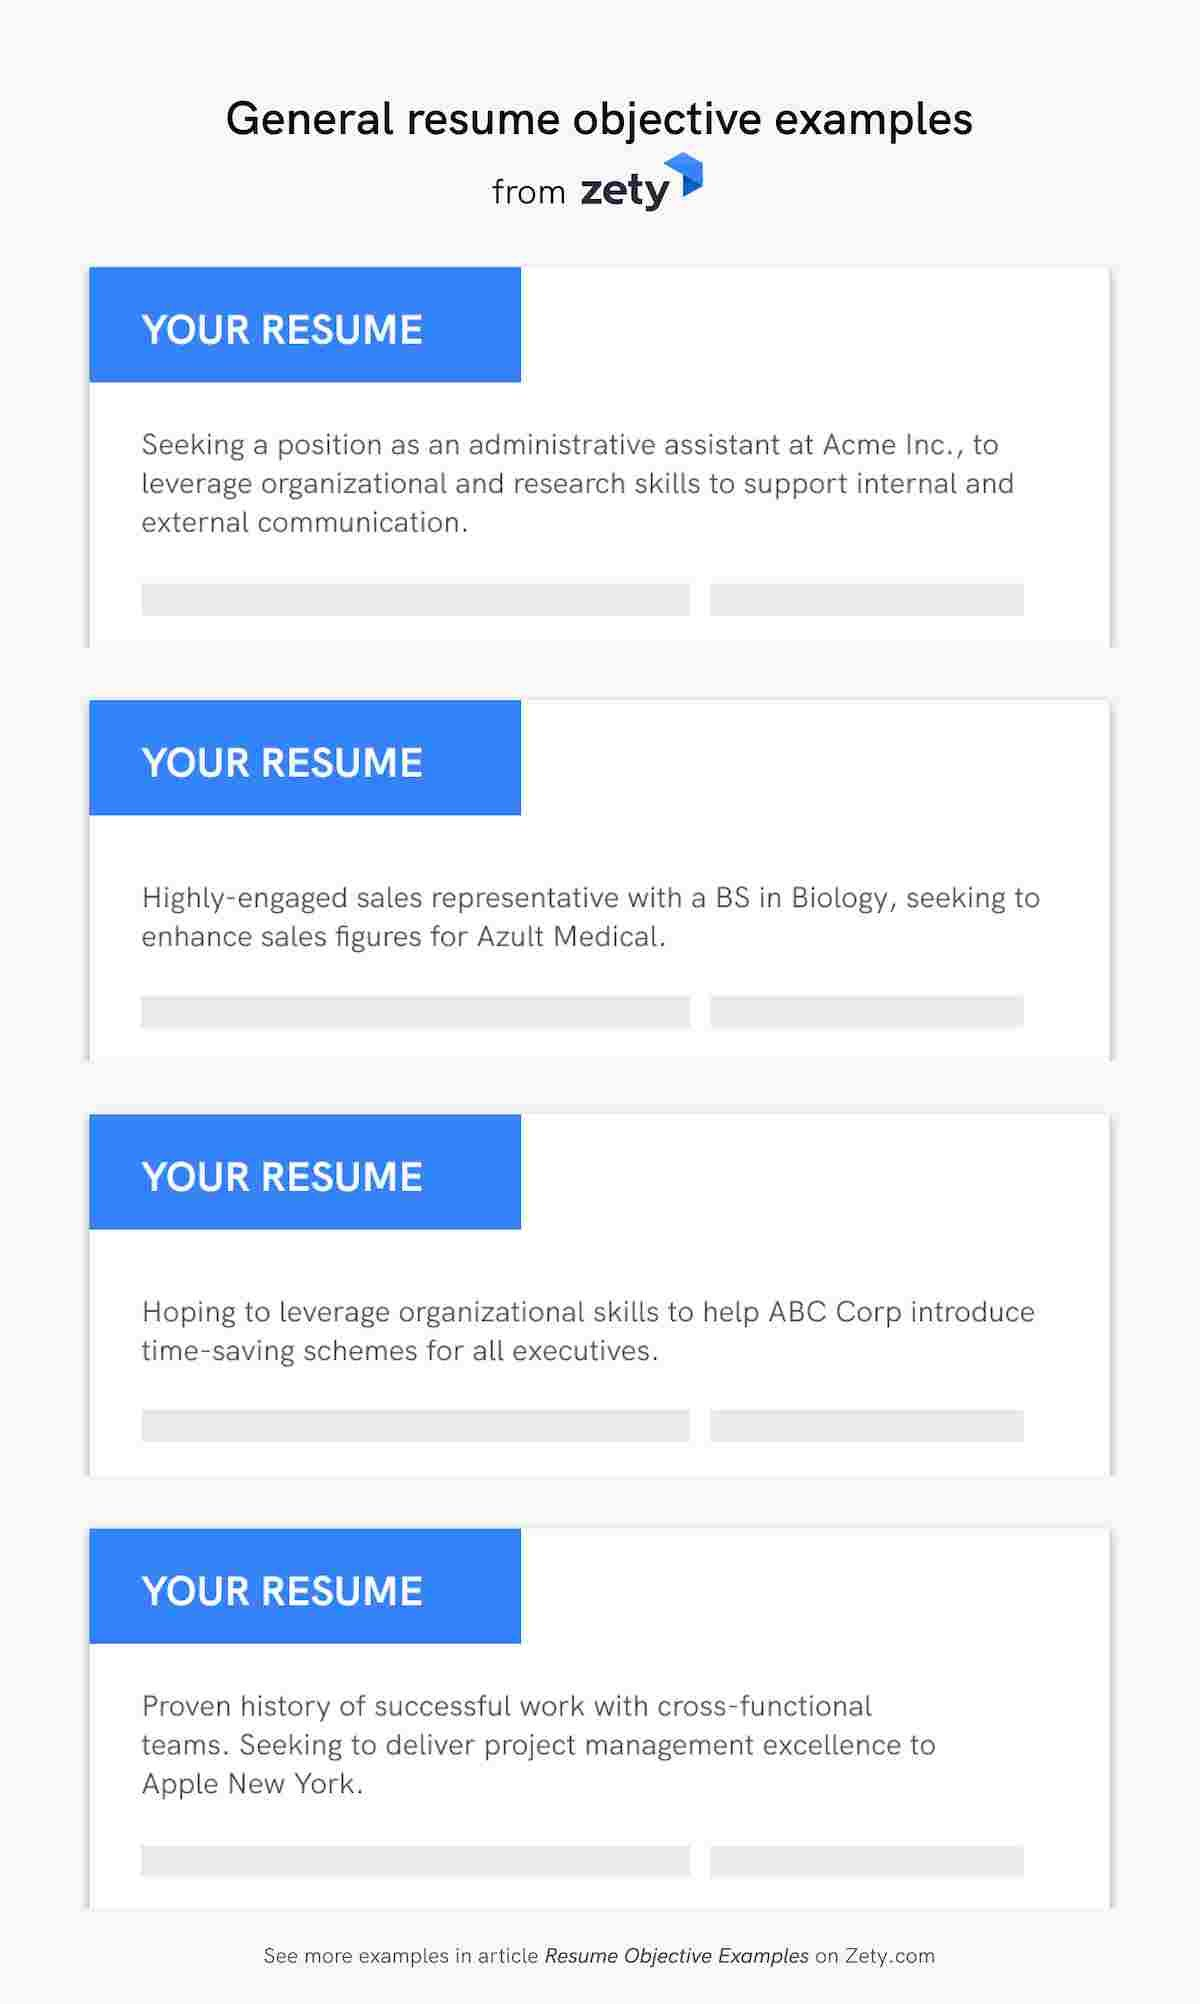 resume objective examples career objectives for all jobs basic ideas general kubernetes Resume Basic Resume Objective Ideas